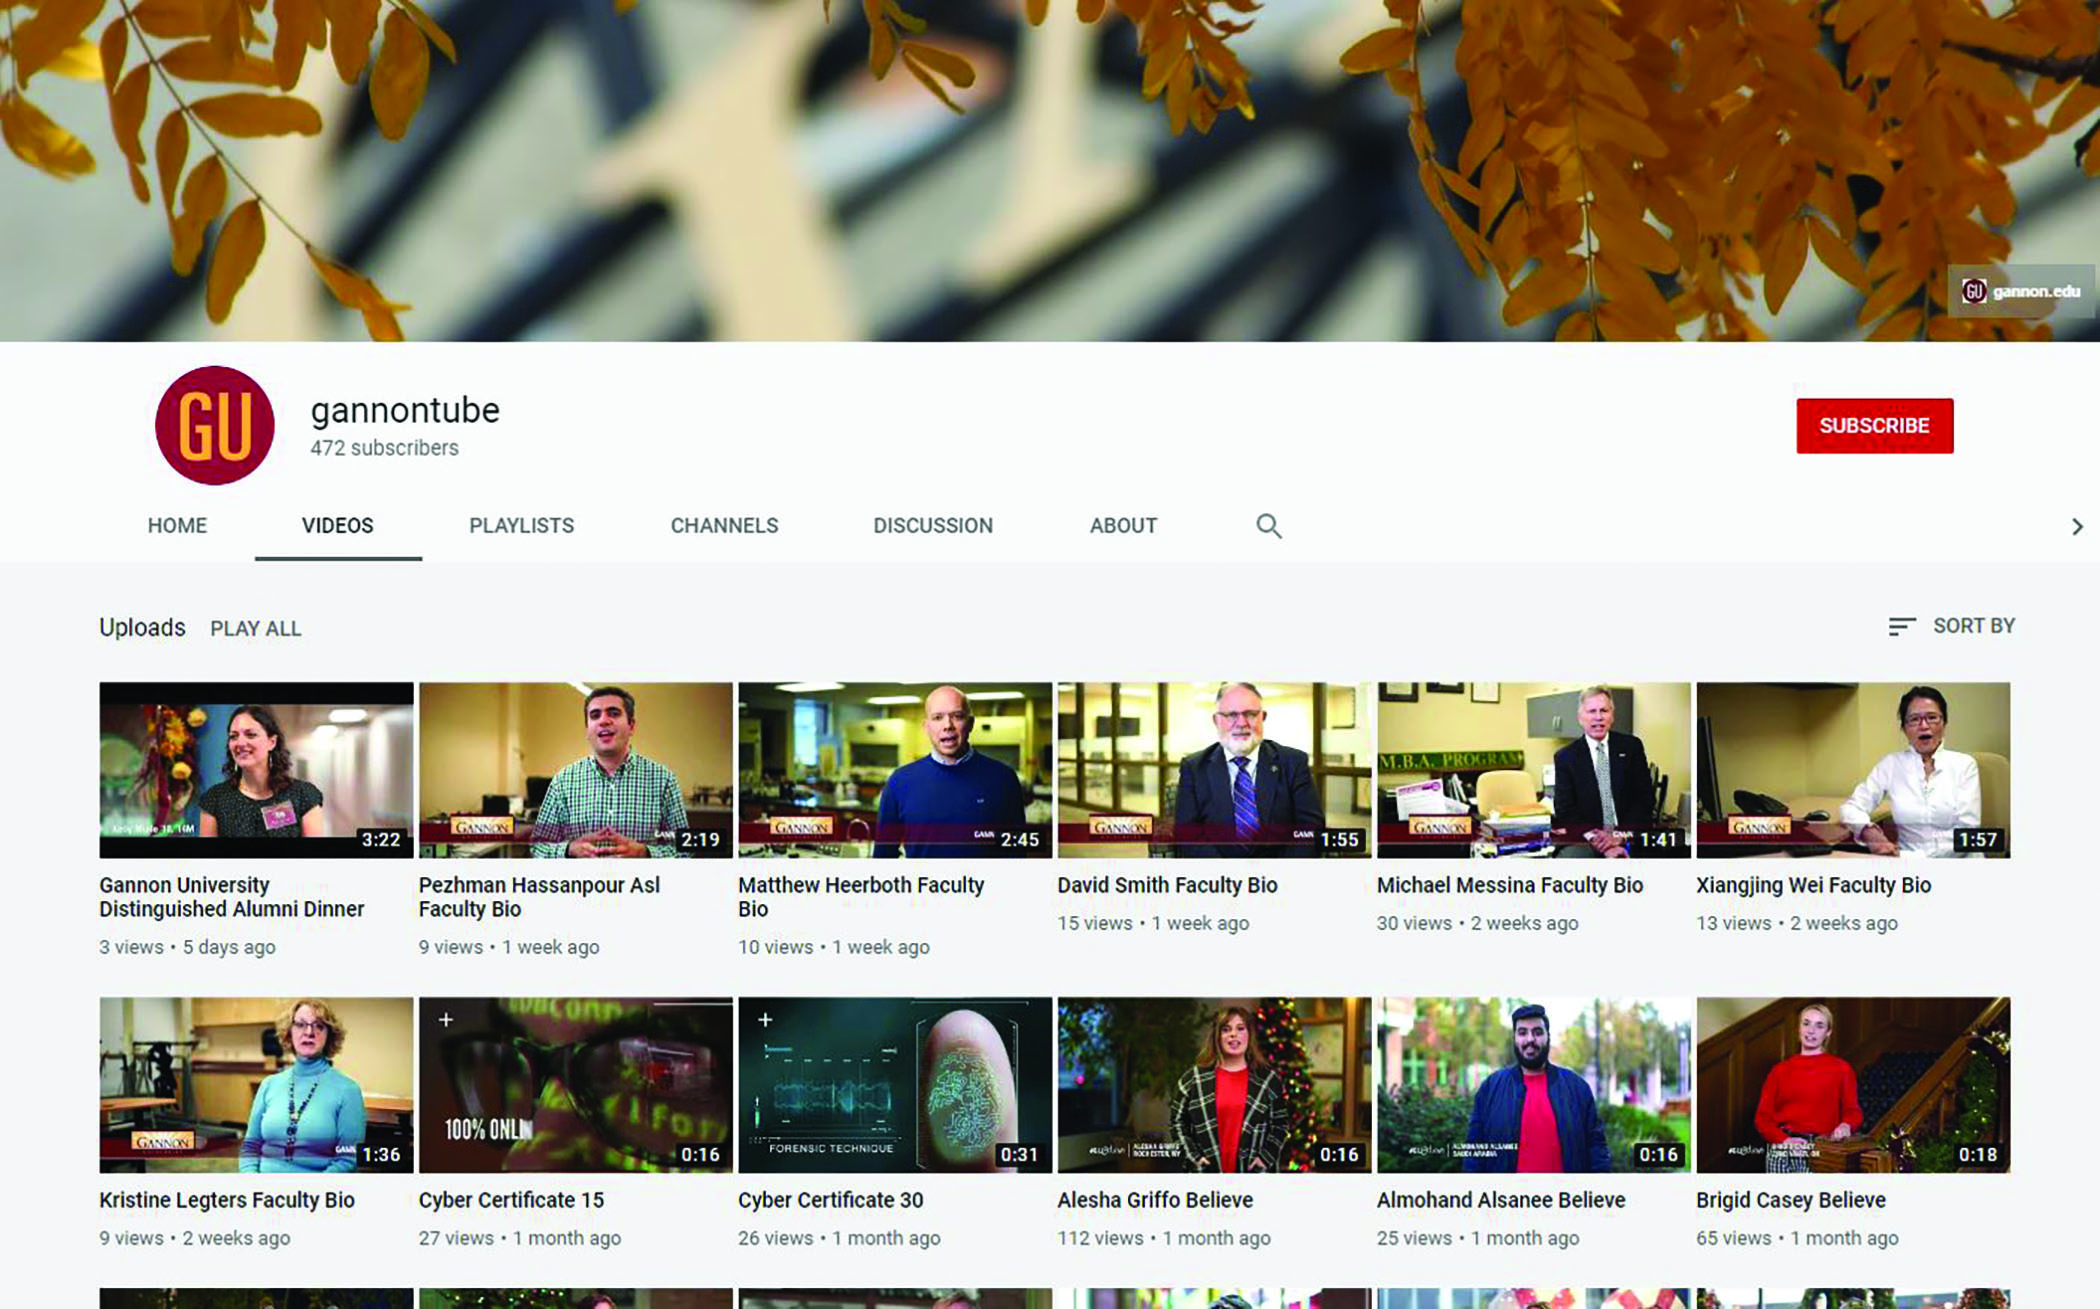 Students explore Gannon's YouTube channel